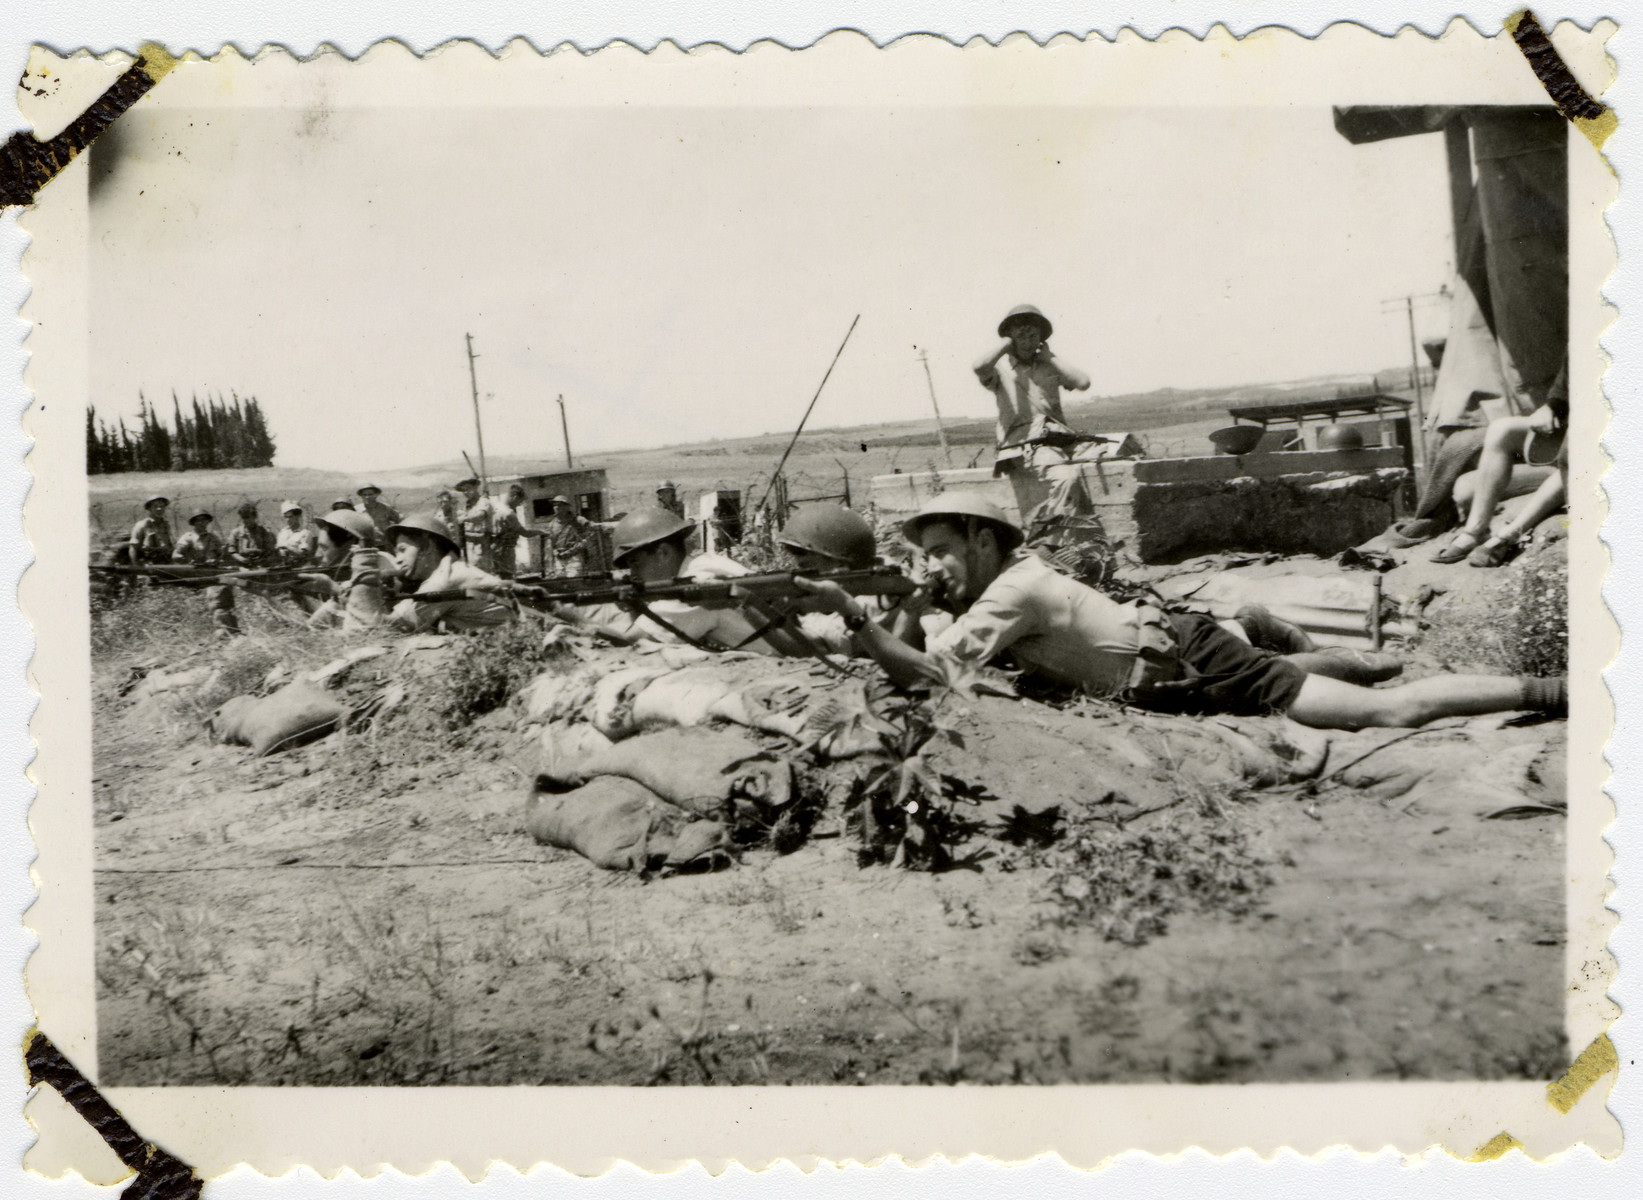 Israeli soldiers fire their weapons during the Israeli War of Independence.